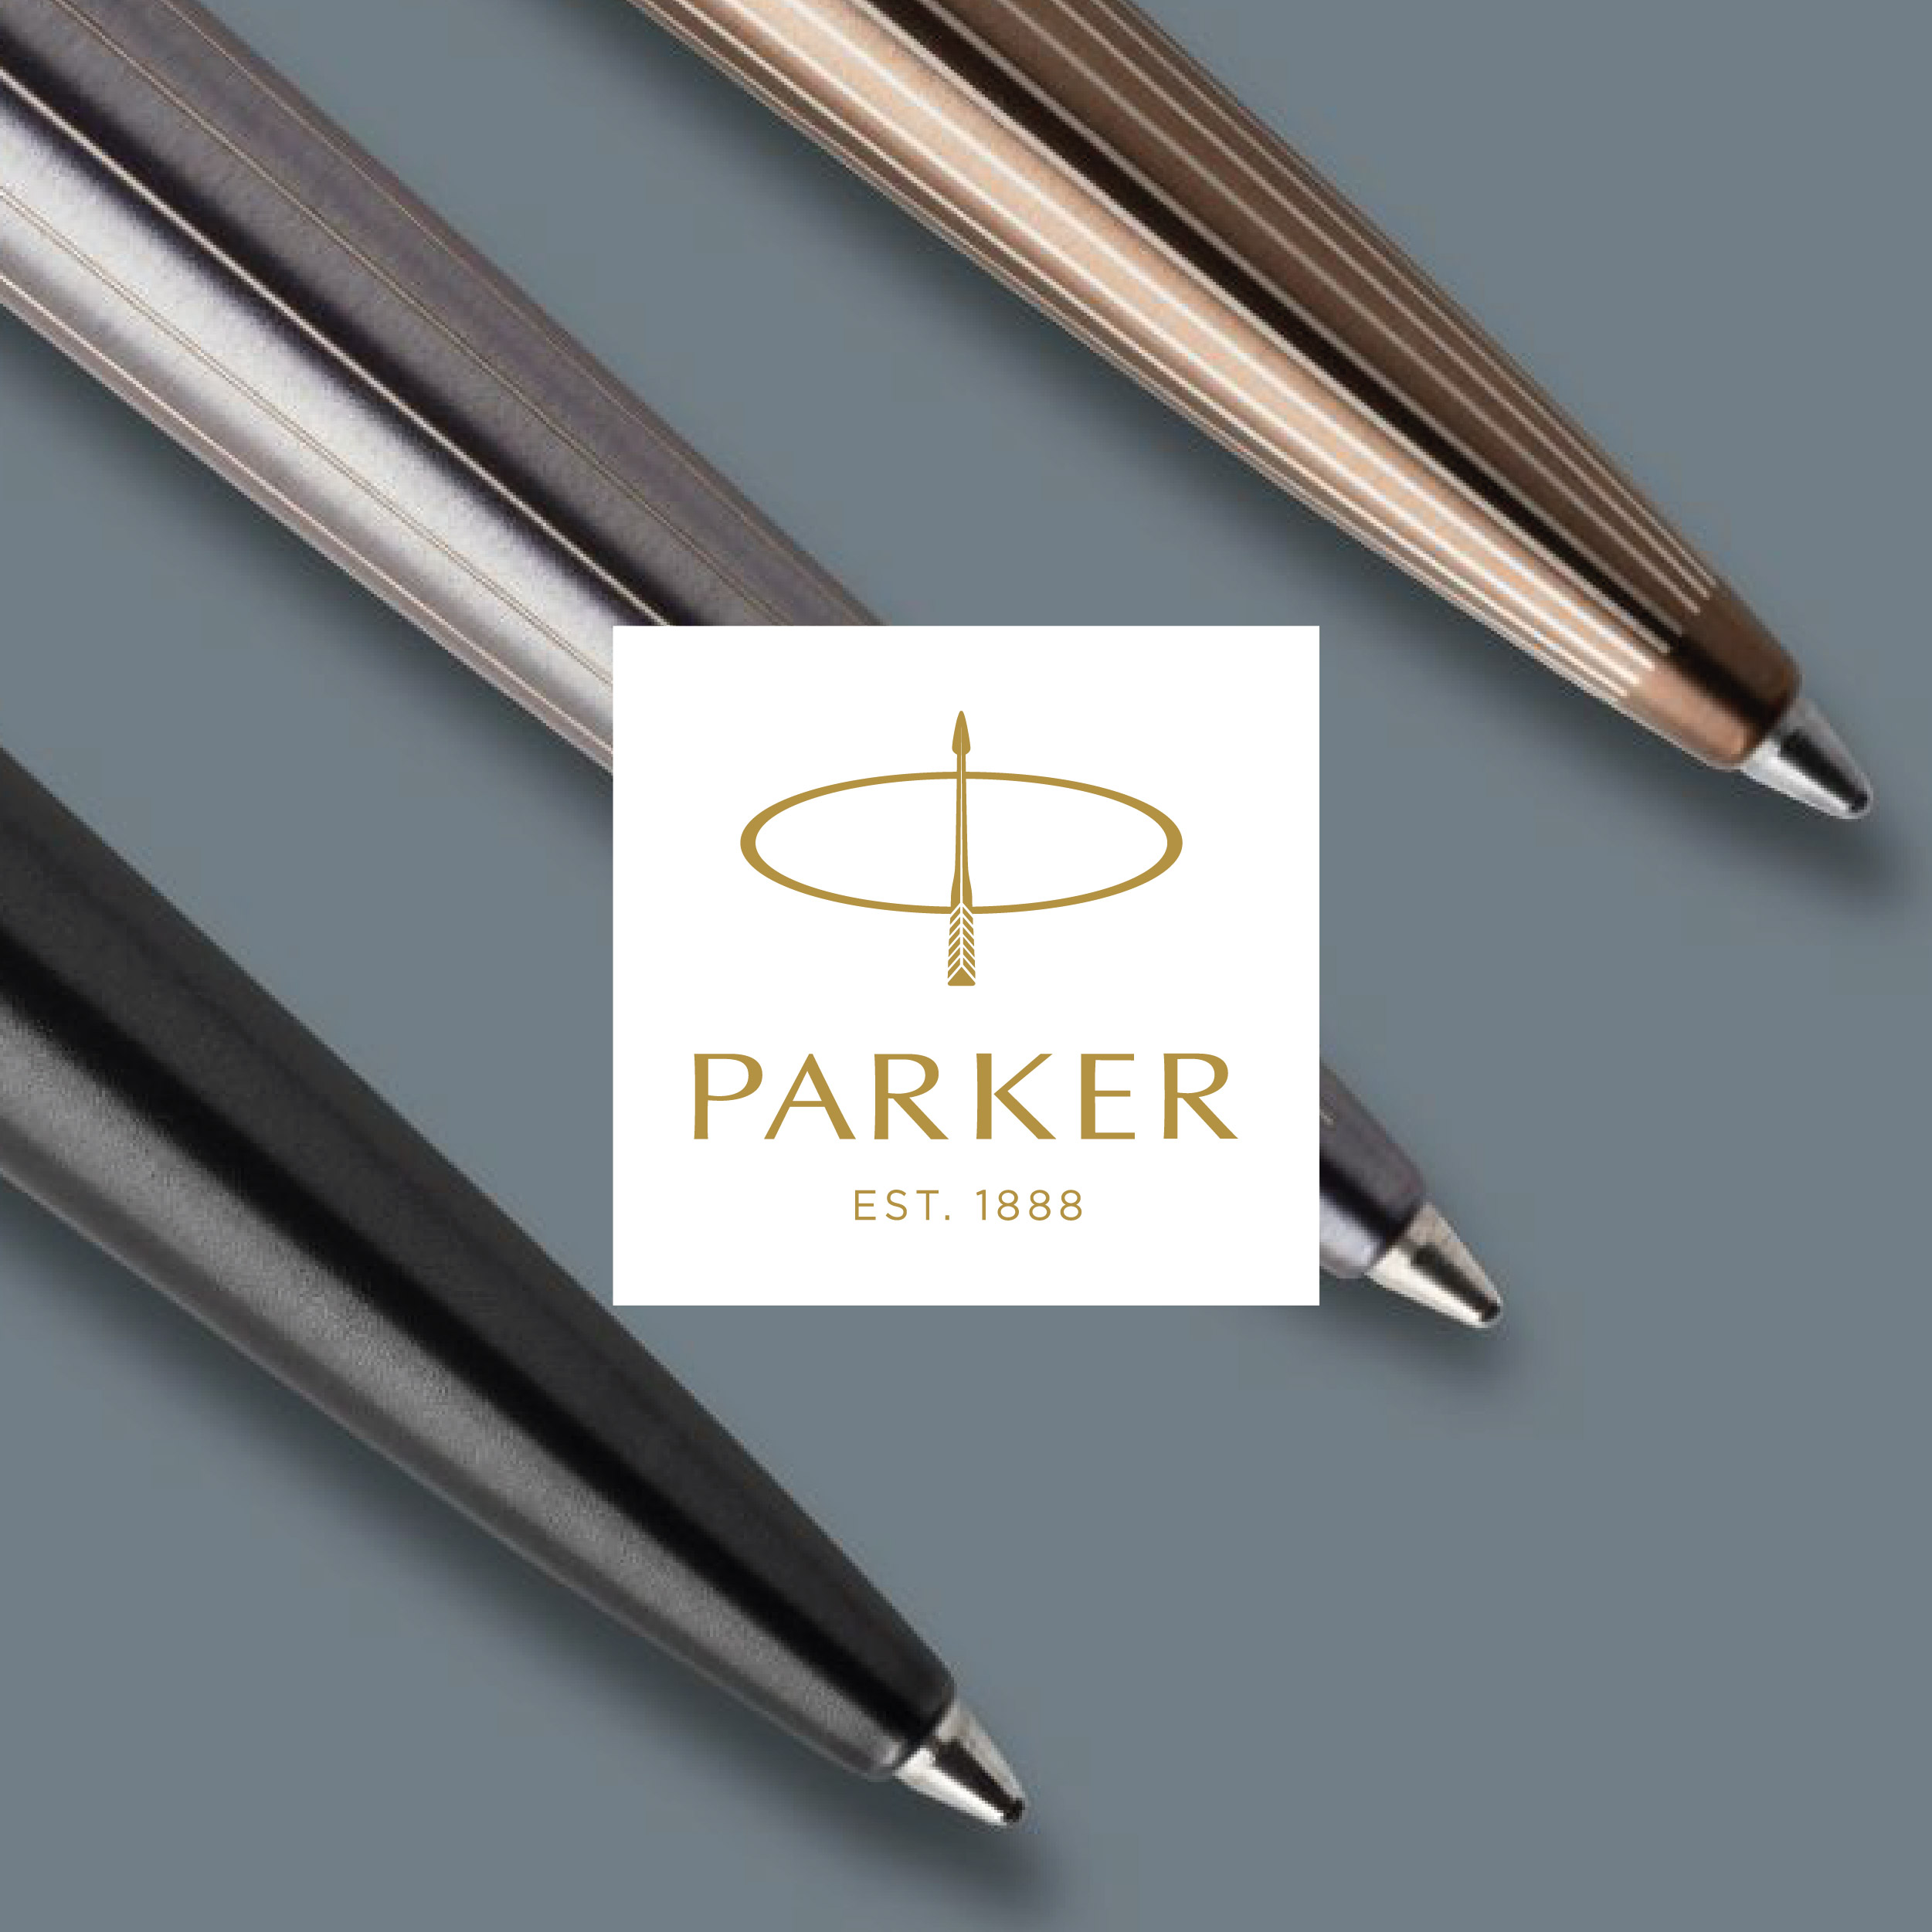 PromoBrand_Parker_Pens_Promotional_Merchandise_Brands_Bounce_Creative_Designs